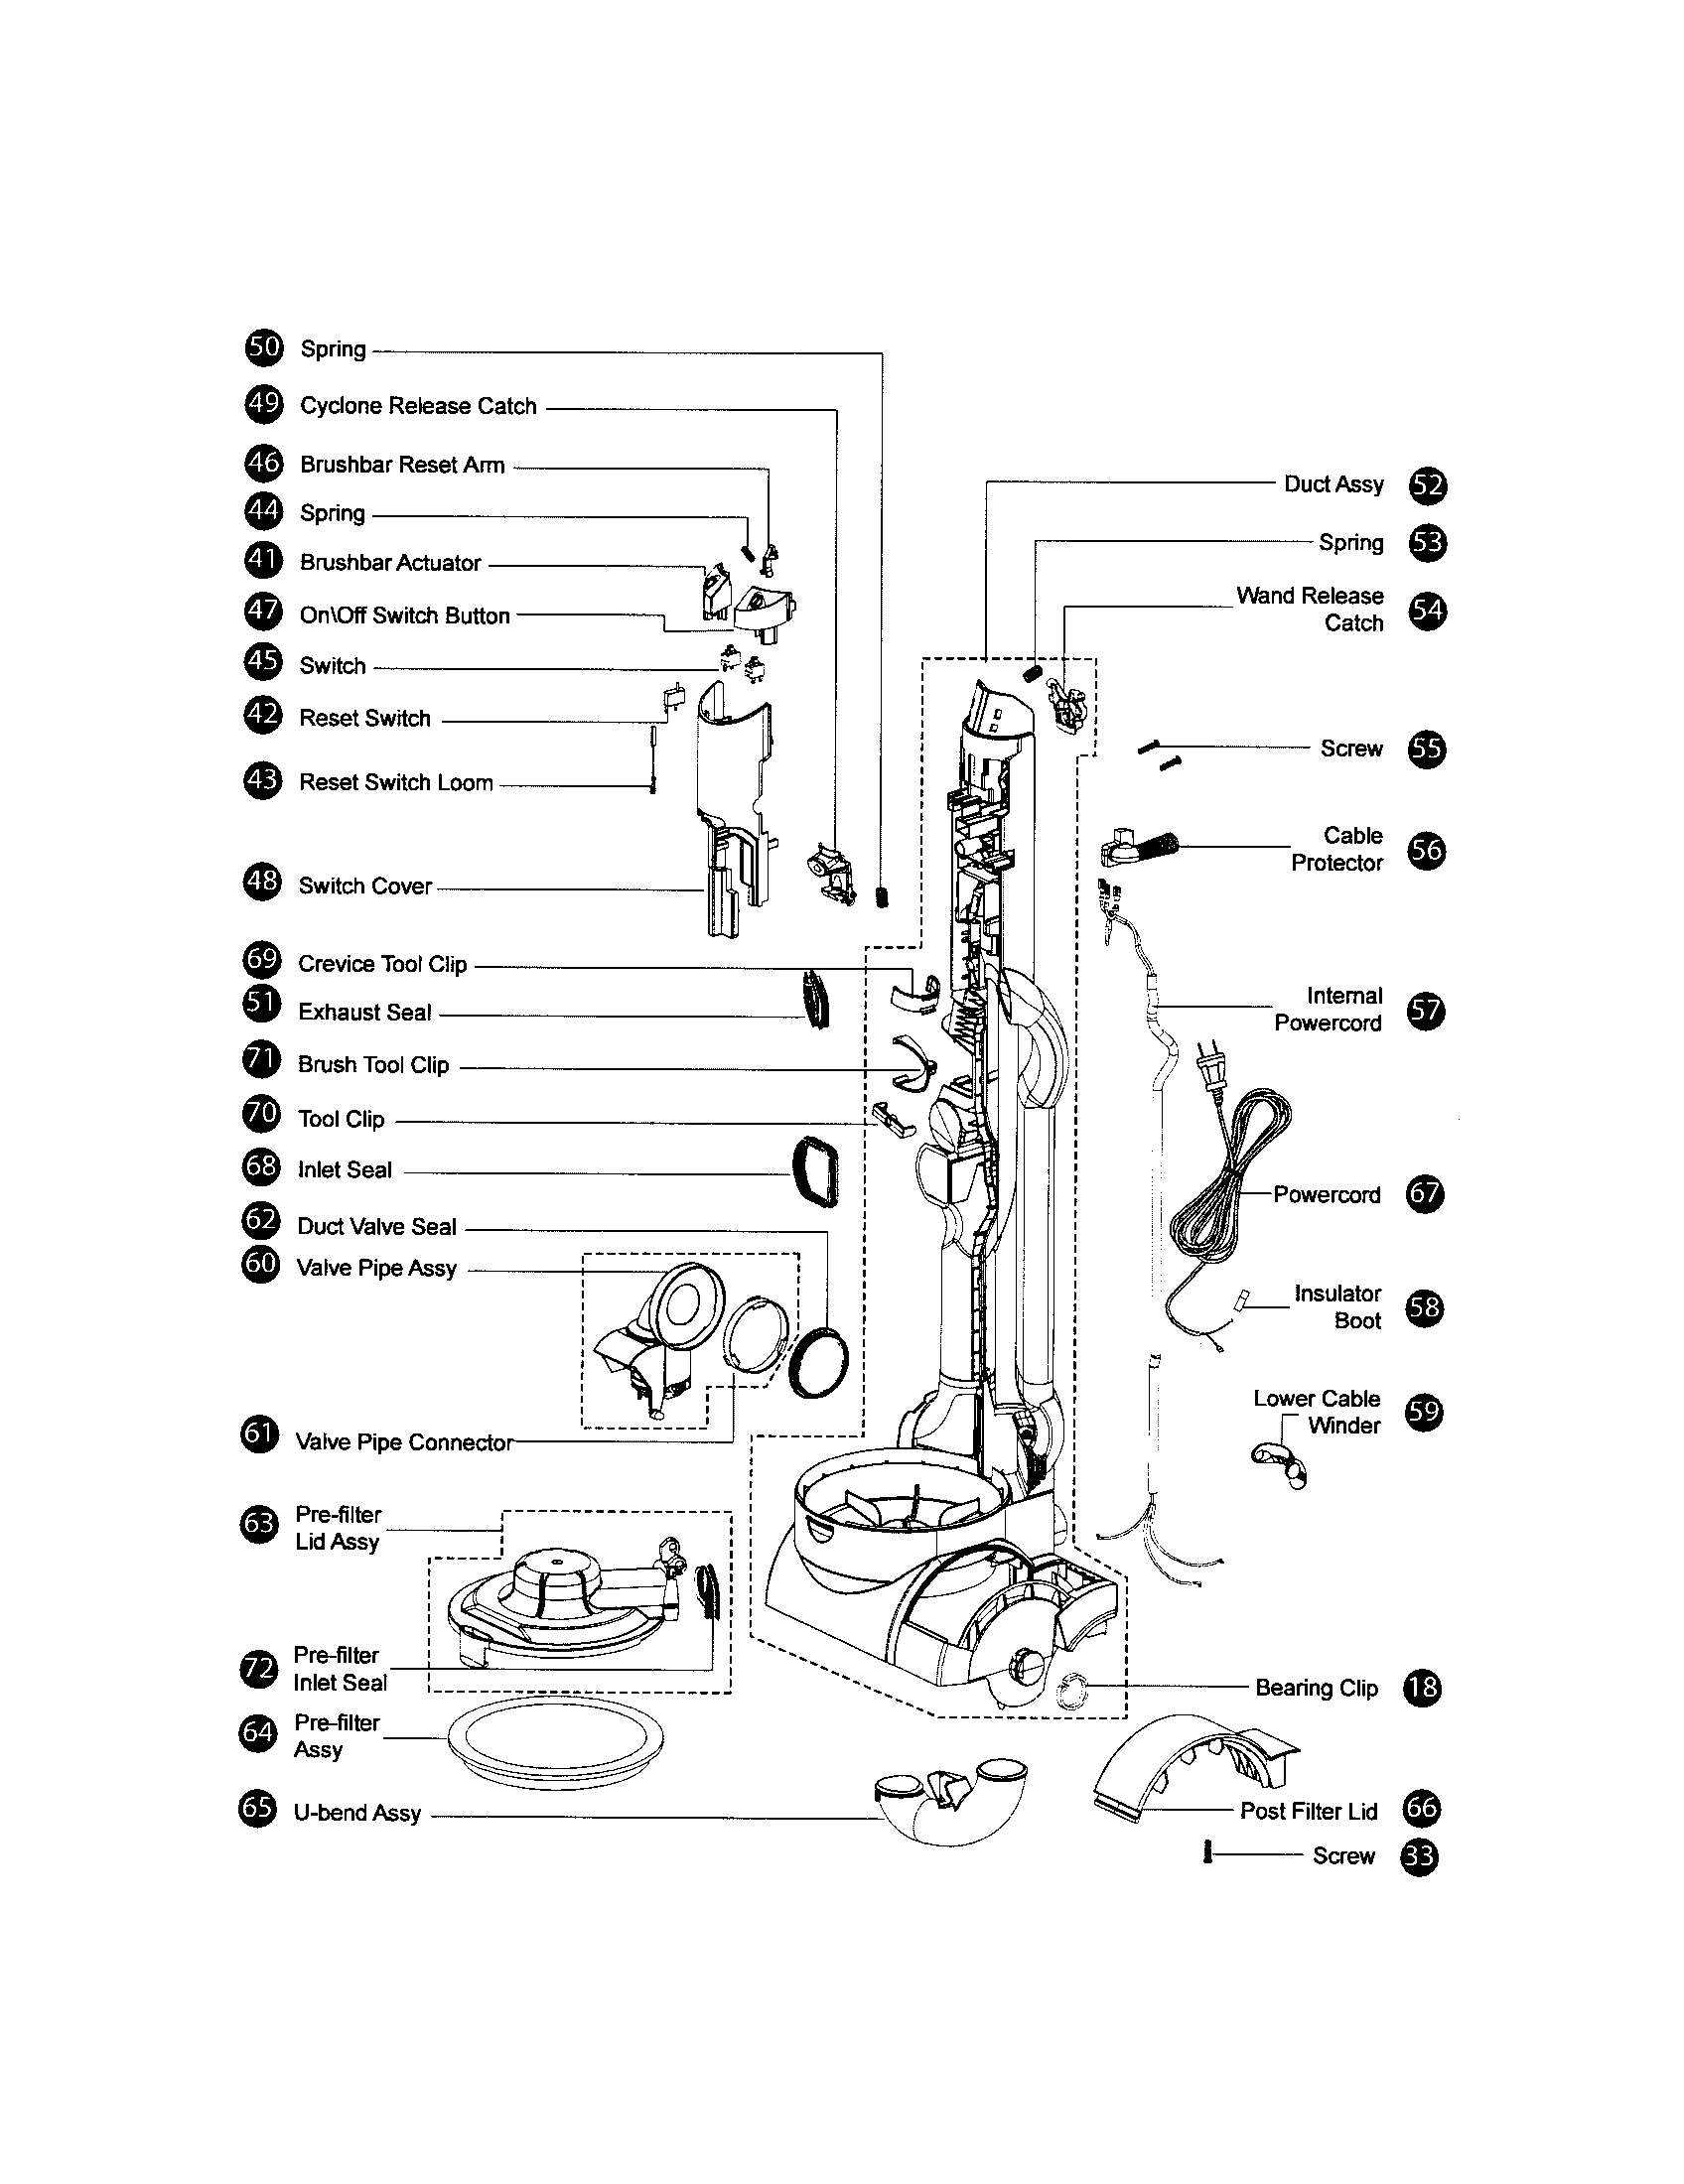 Dyson model DC17 vacuum, upright genuine parts